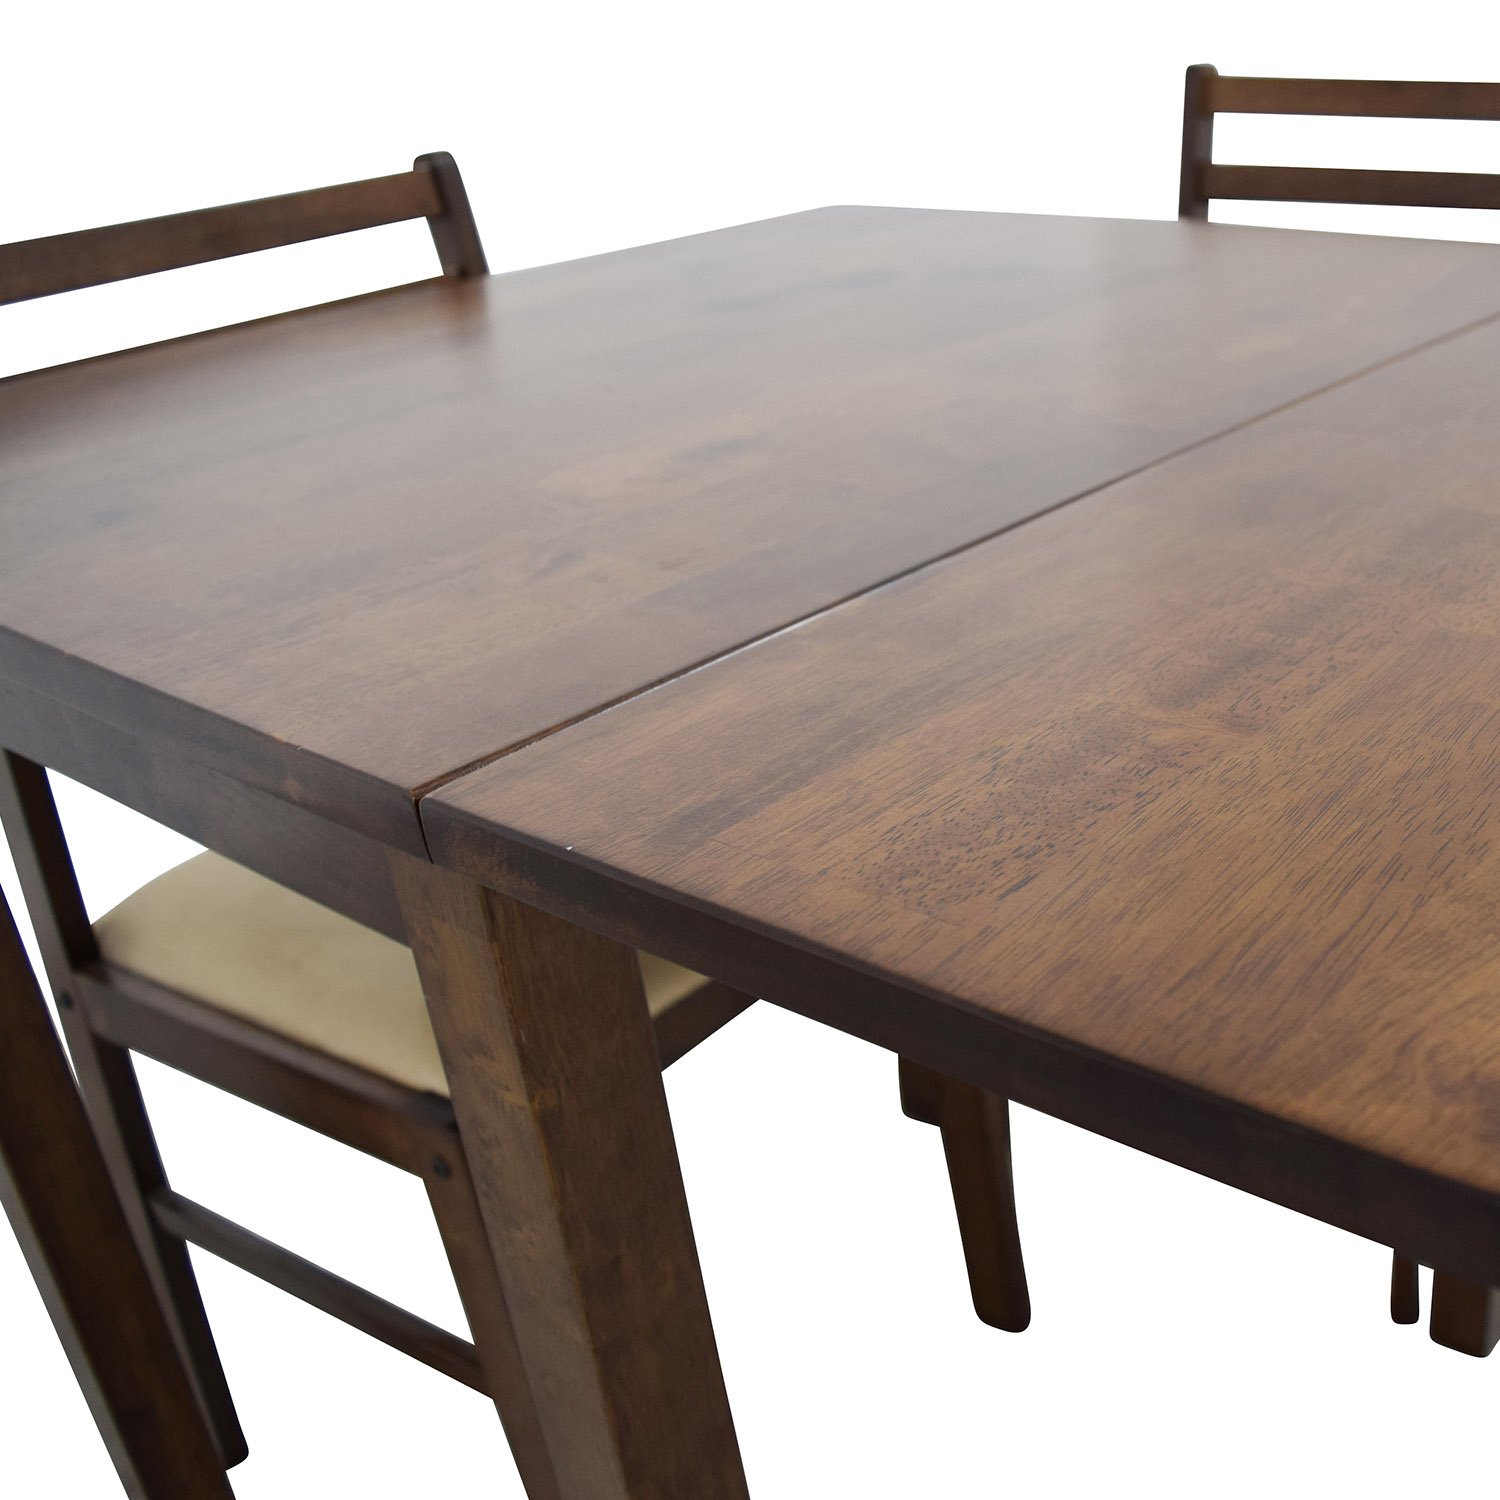 buy Mid-Century Table Set with Two Chairs online